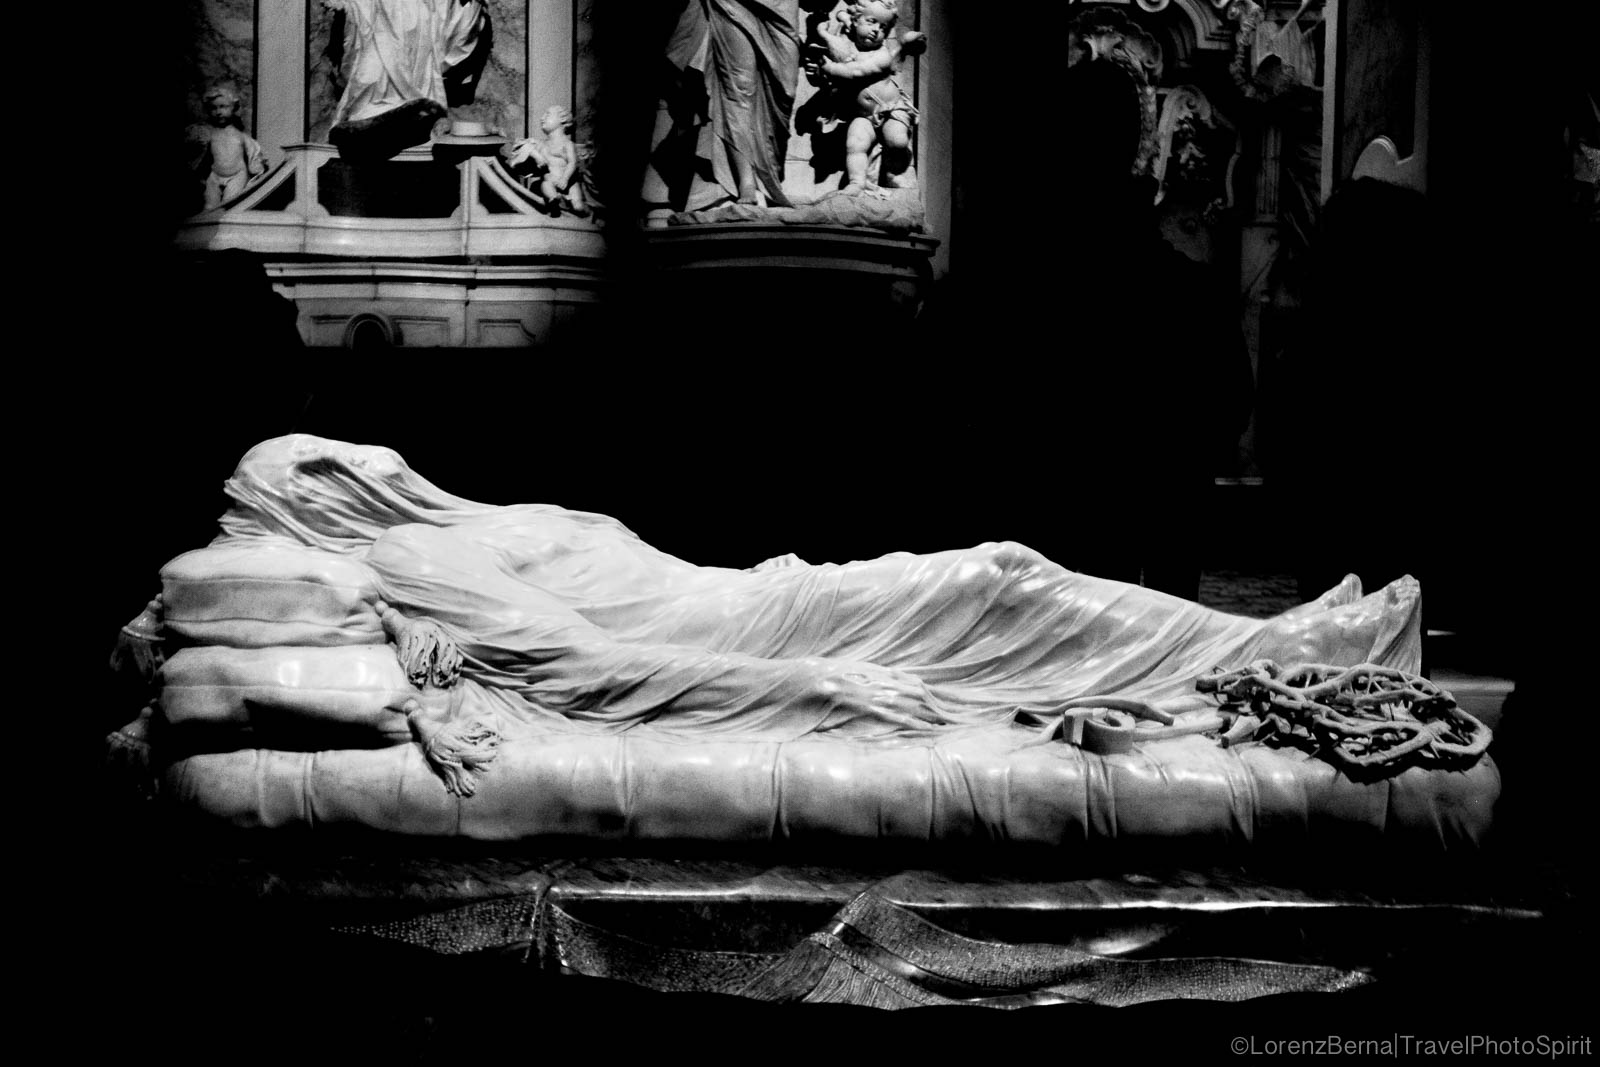 Veiled Christ, a 1753 marble sculpture by Giuseppe Sanmartino, in the Cappella Sansevero, Naples, Italy